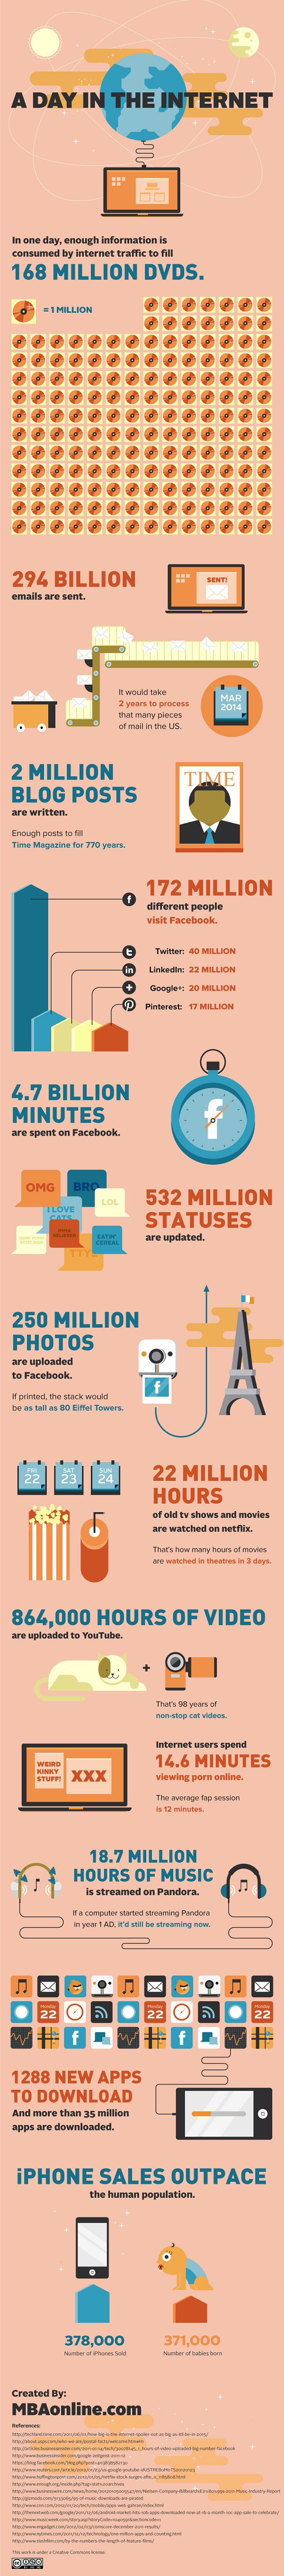 What Happens In One Day On The Internet [INFOGRAPHIC]